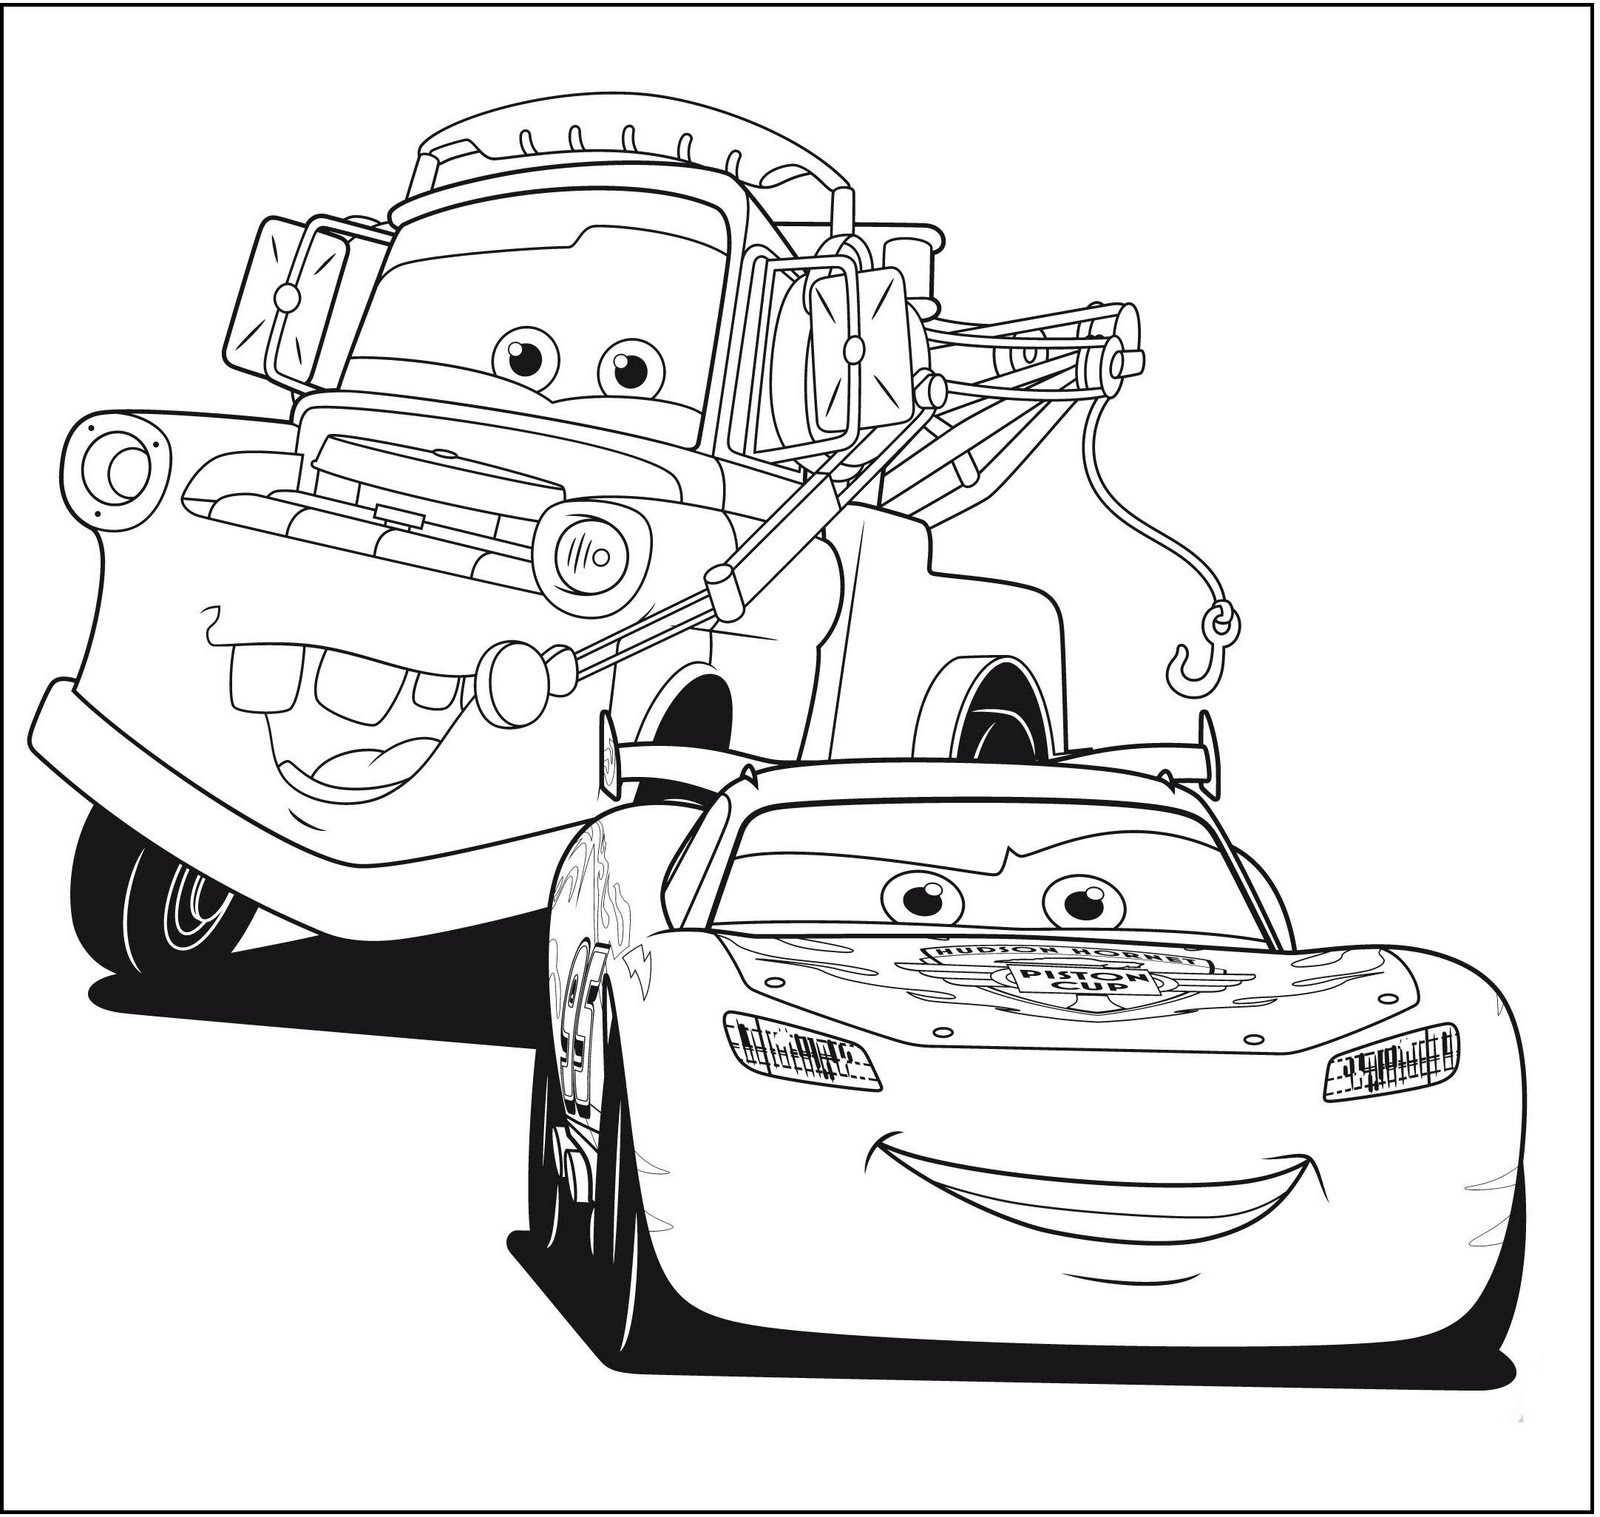 disney cars coloring pages printable disney cars 2 coloring page disney cars 2 coloring page coloring printable pages disney cars